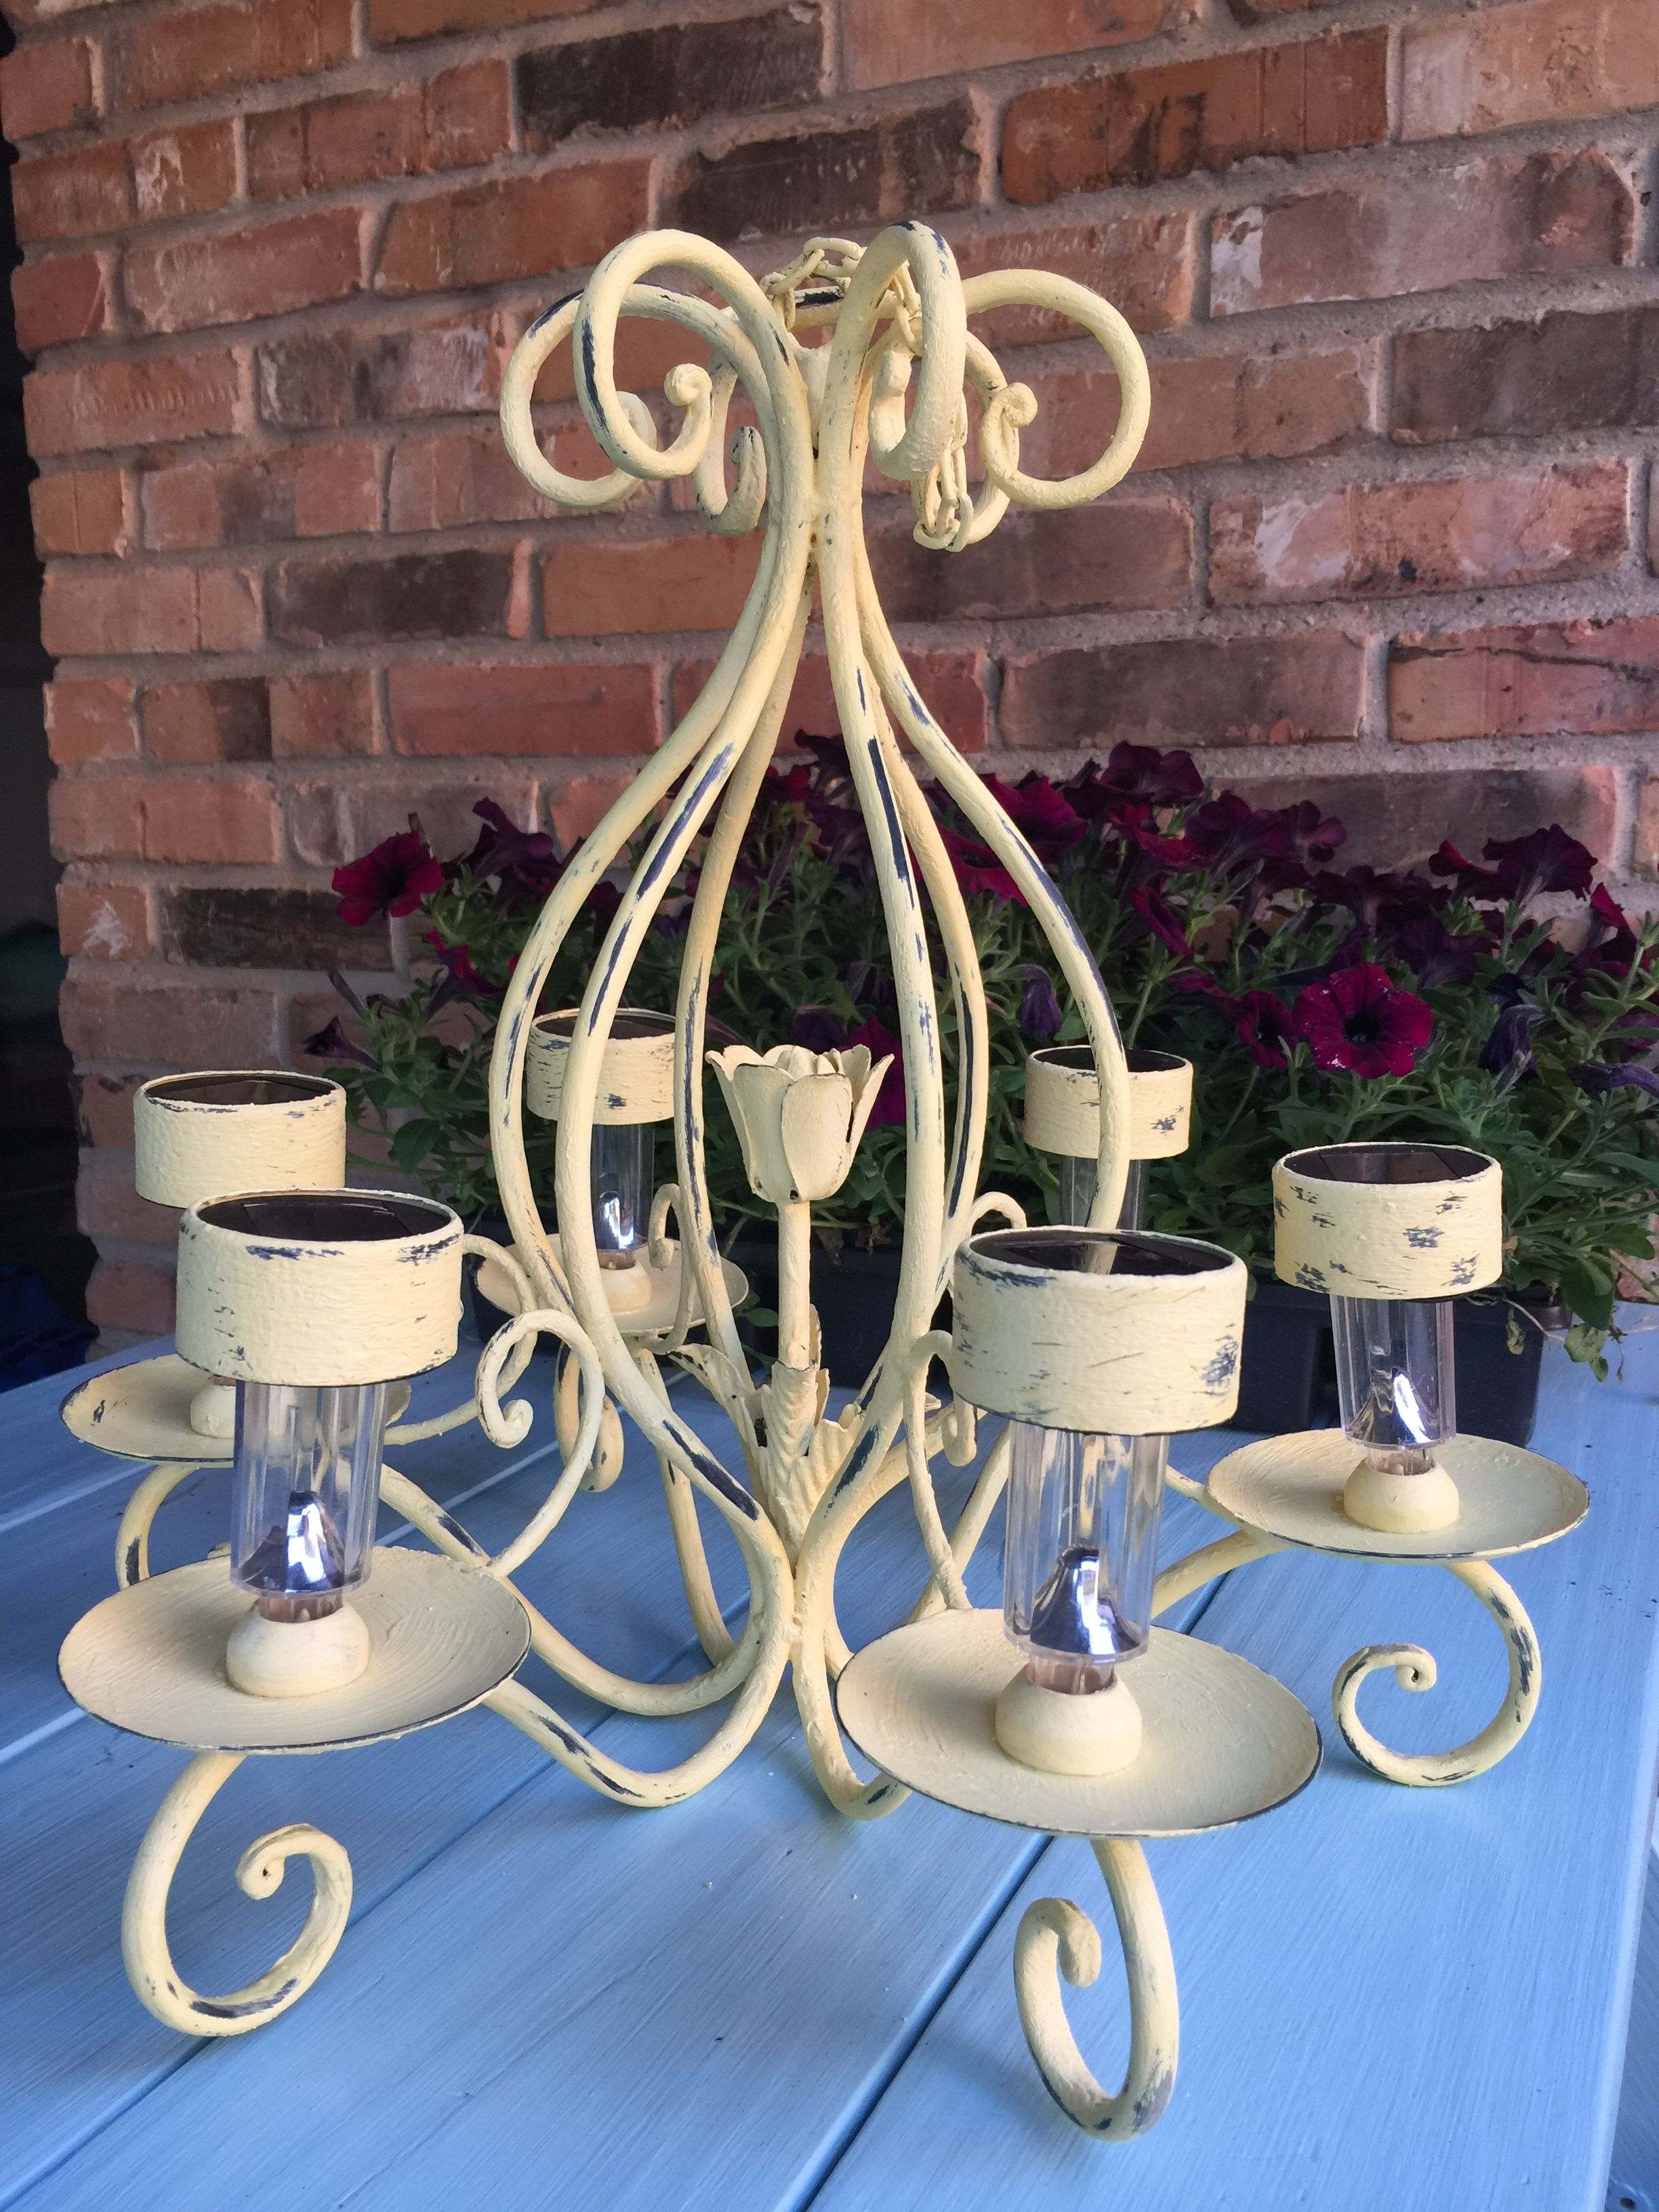 Outdoor Chandelier For Patio Used Chalk Paint And Solar Lights Outdoor Chandelier Solar Lights Solar Powered Lights